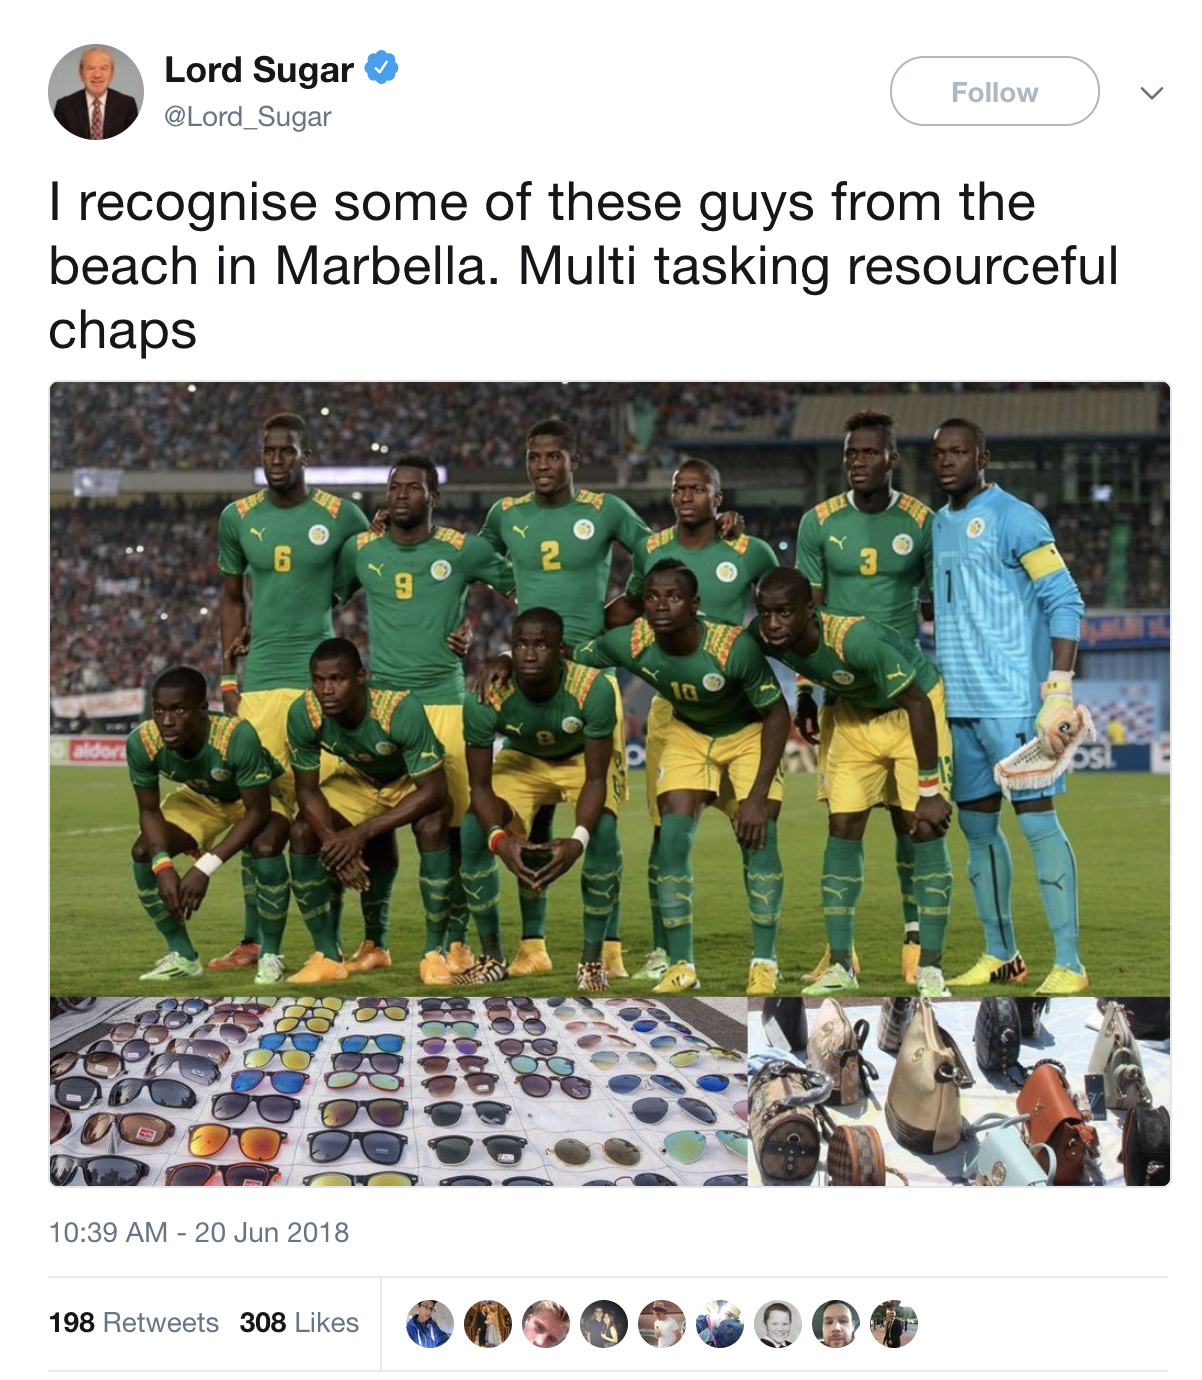 Lord Sugar under fire over 'racist' World Cup tweet